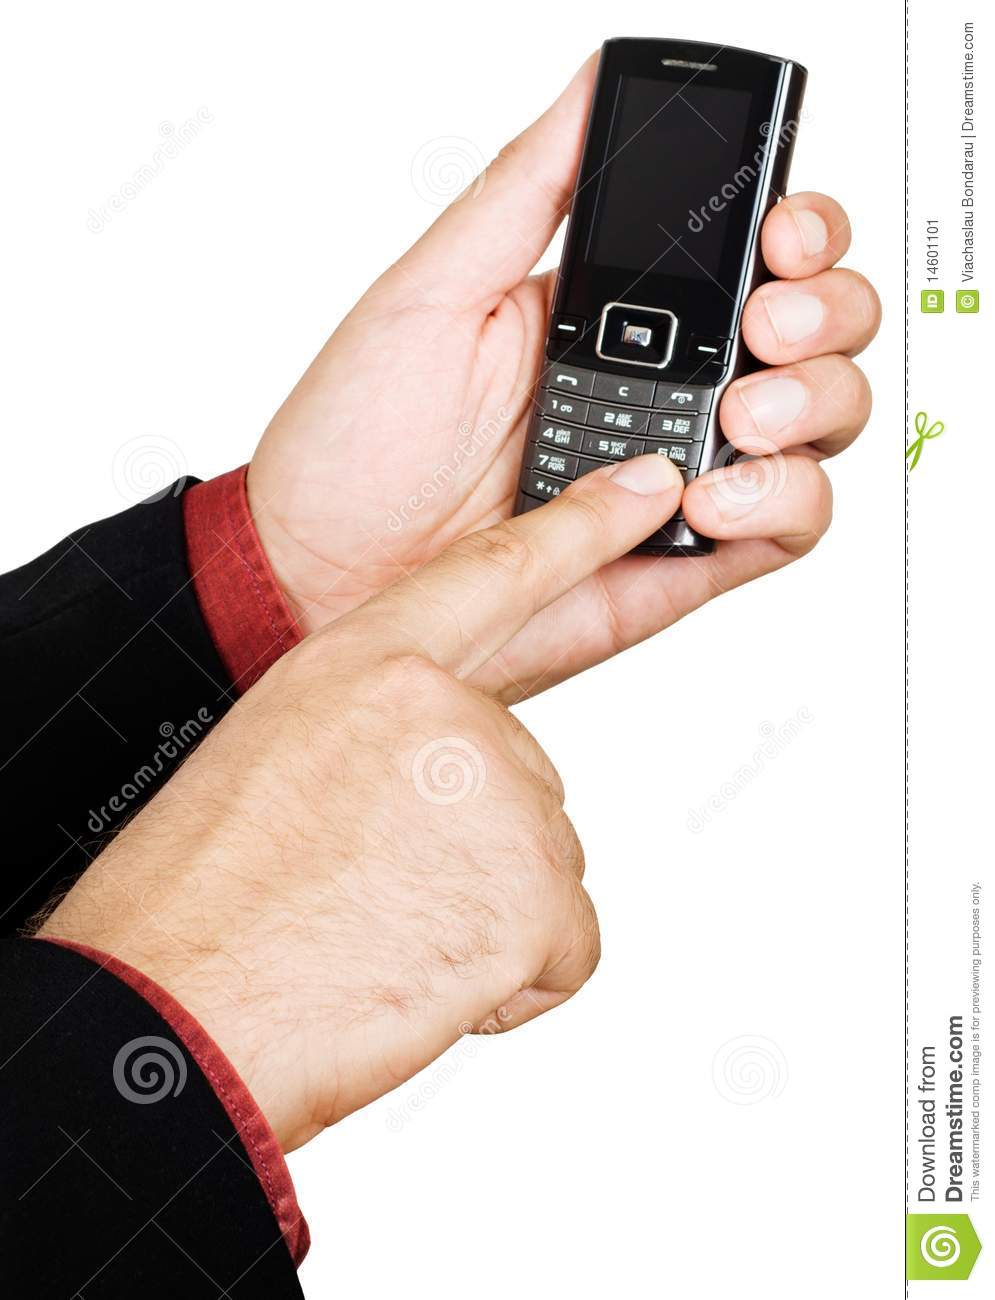 Technology Management Image: Businessman's Hand Holding A Cell Phone Stock Image